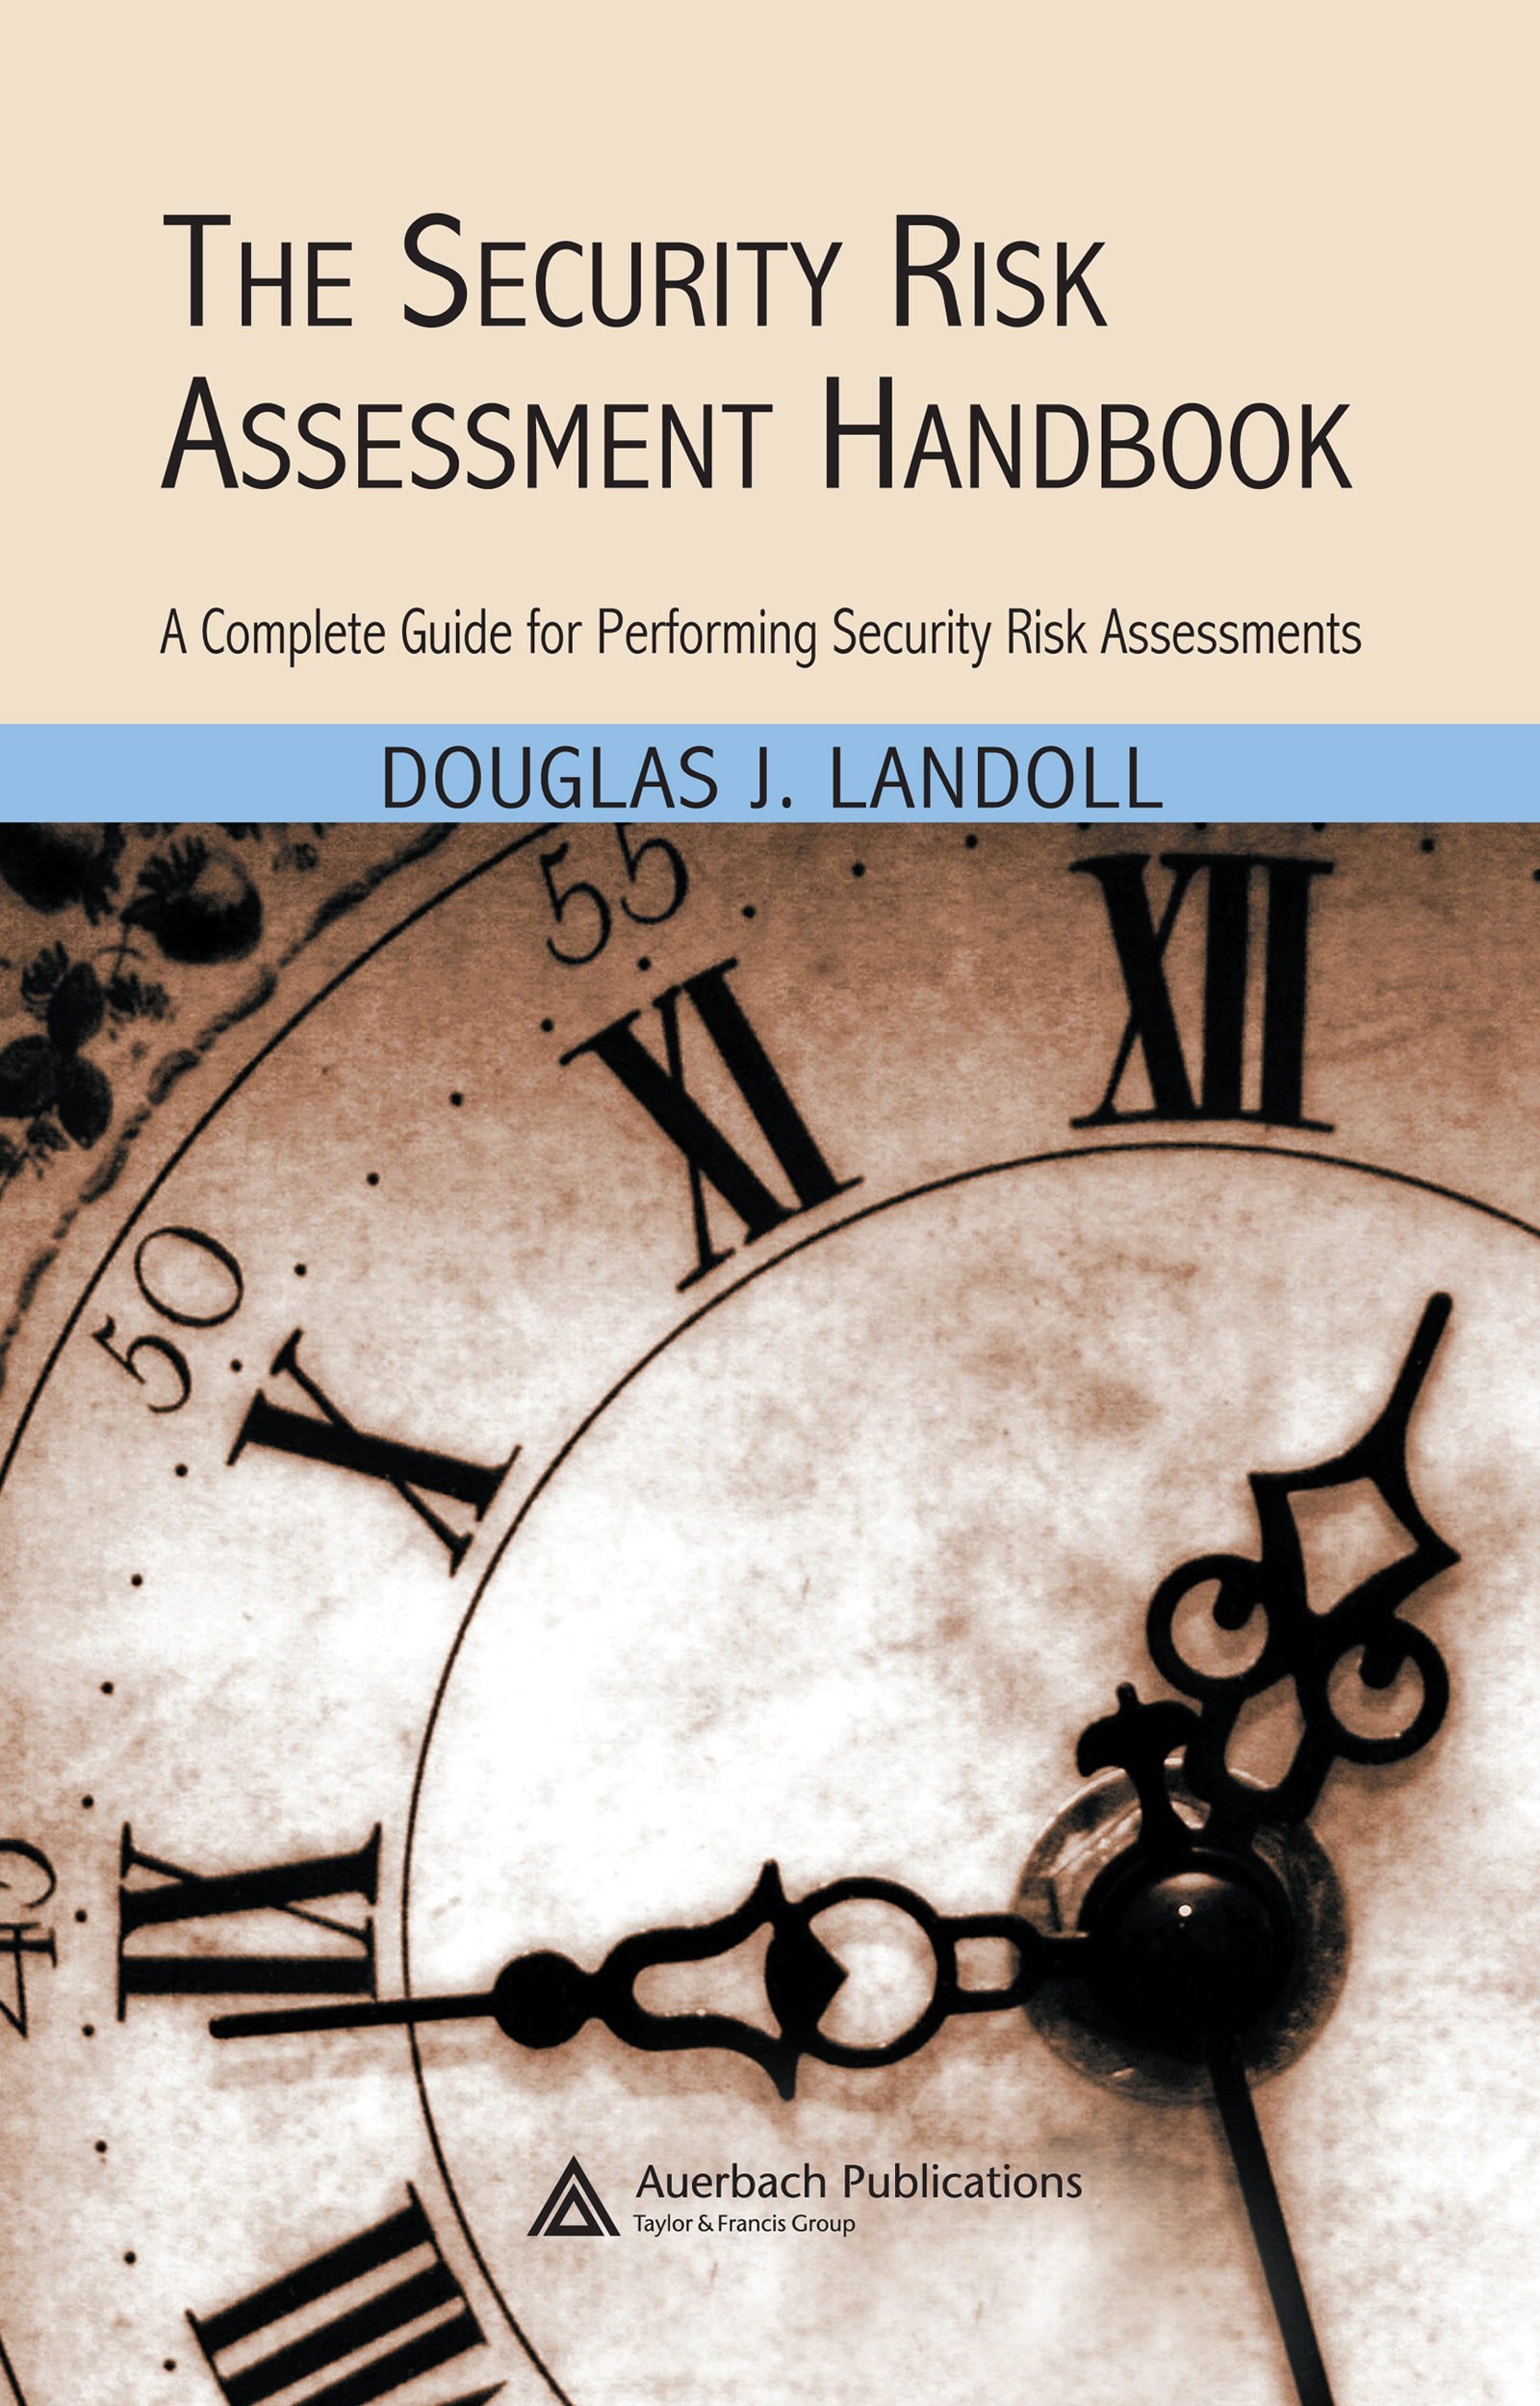 Download Ebook The Security Risk Assessment Handbook by Douglas J. Landoll Pdf